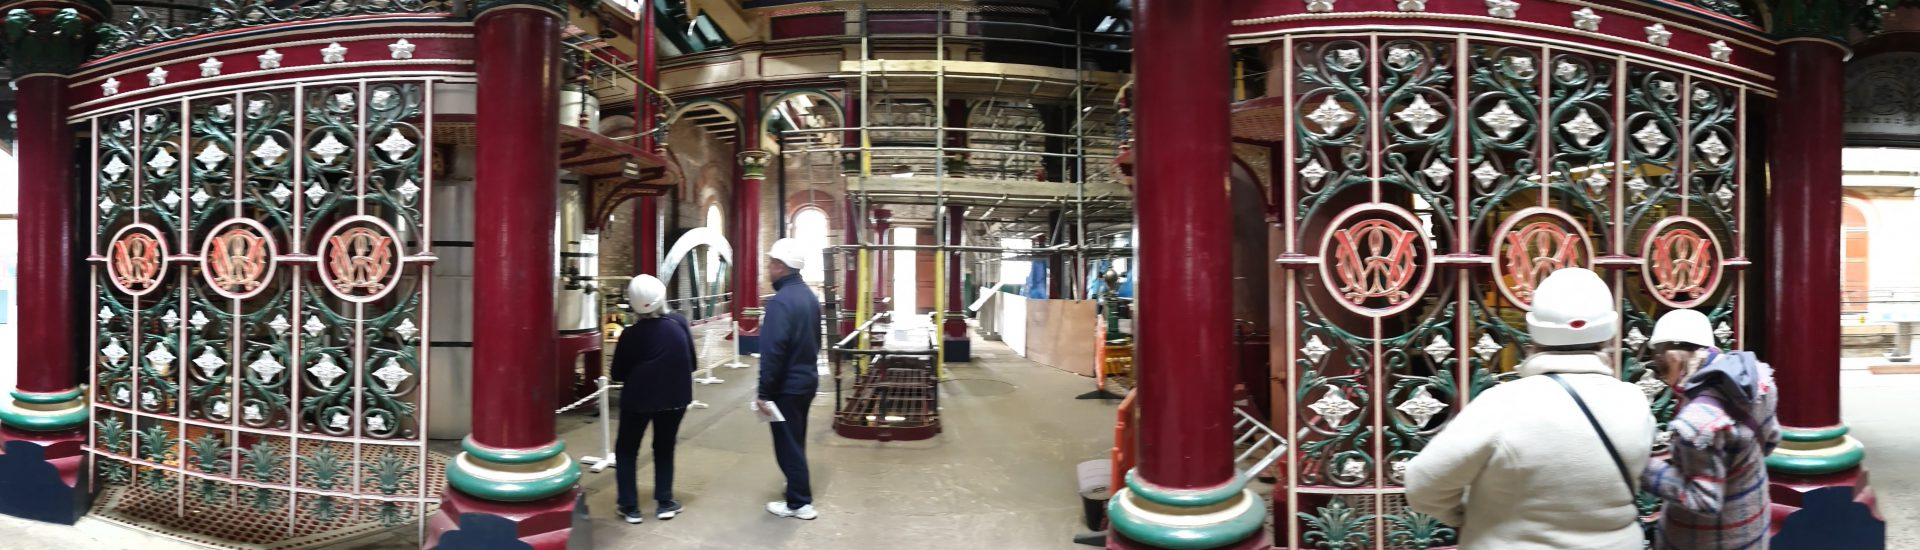 Crossness Pumping Station Panorama